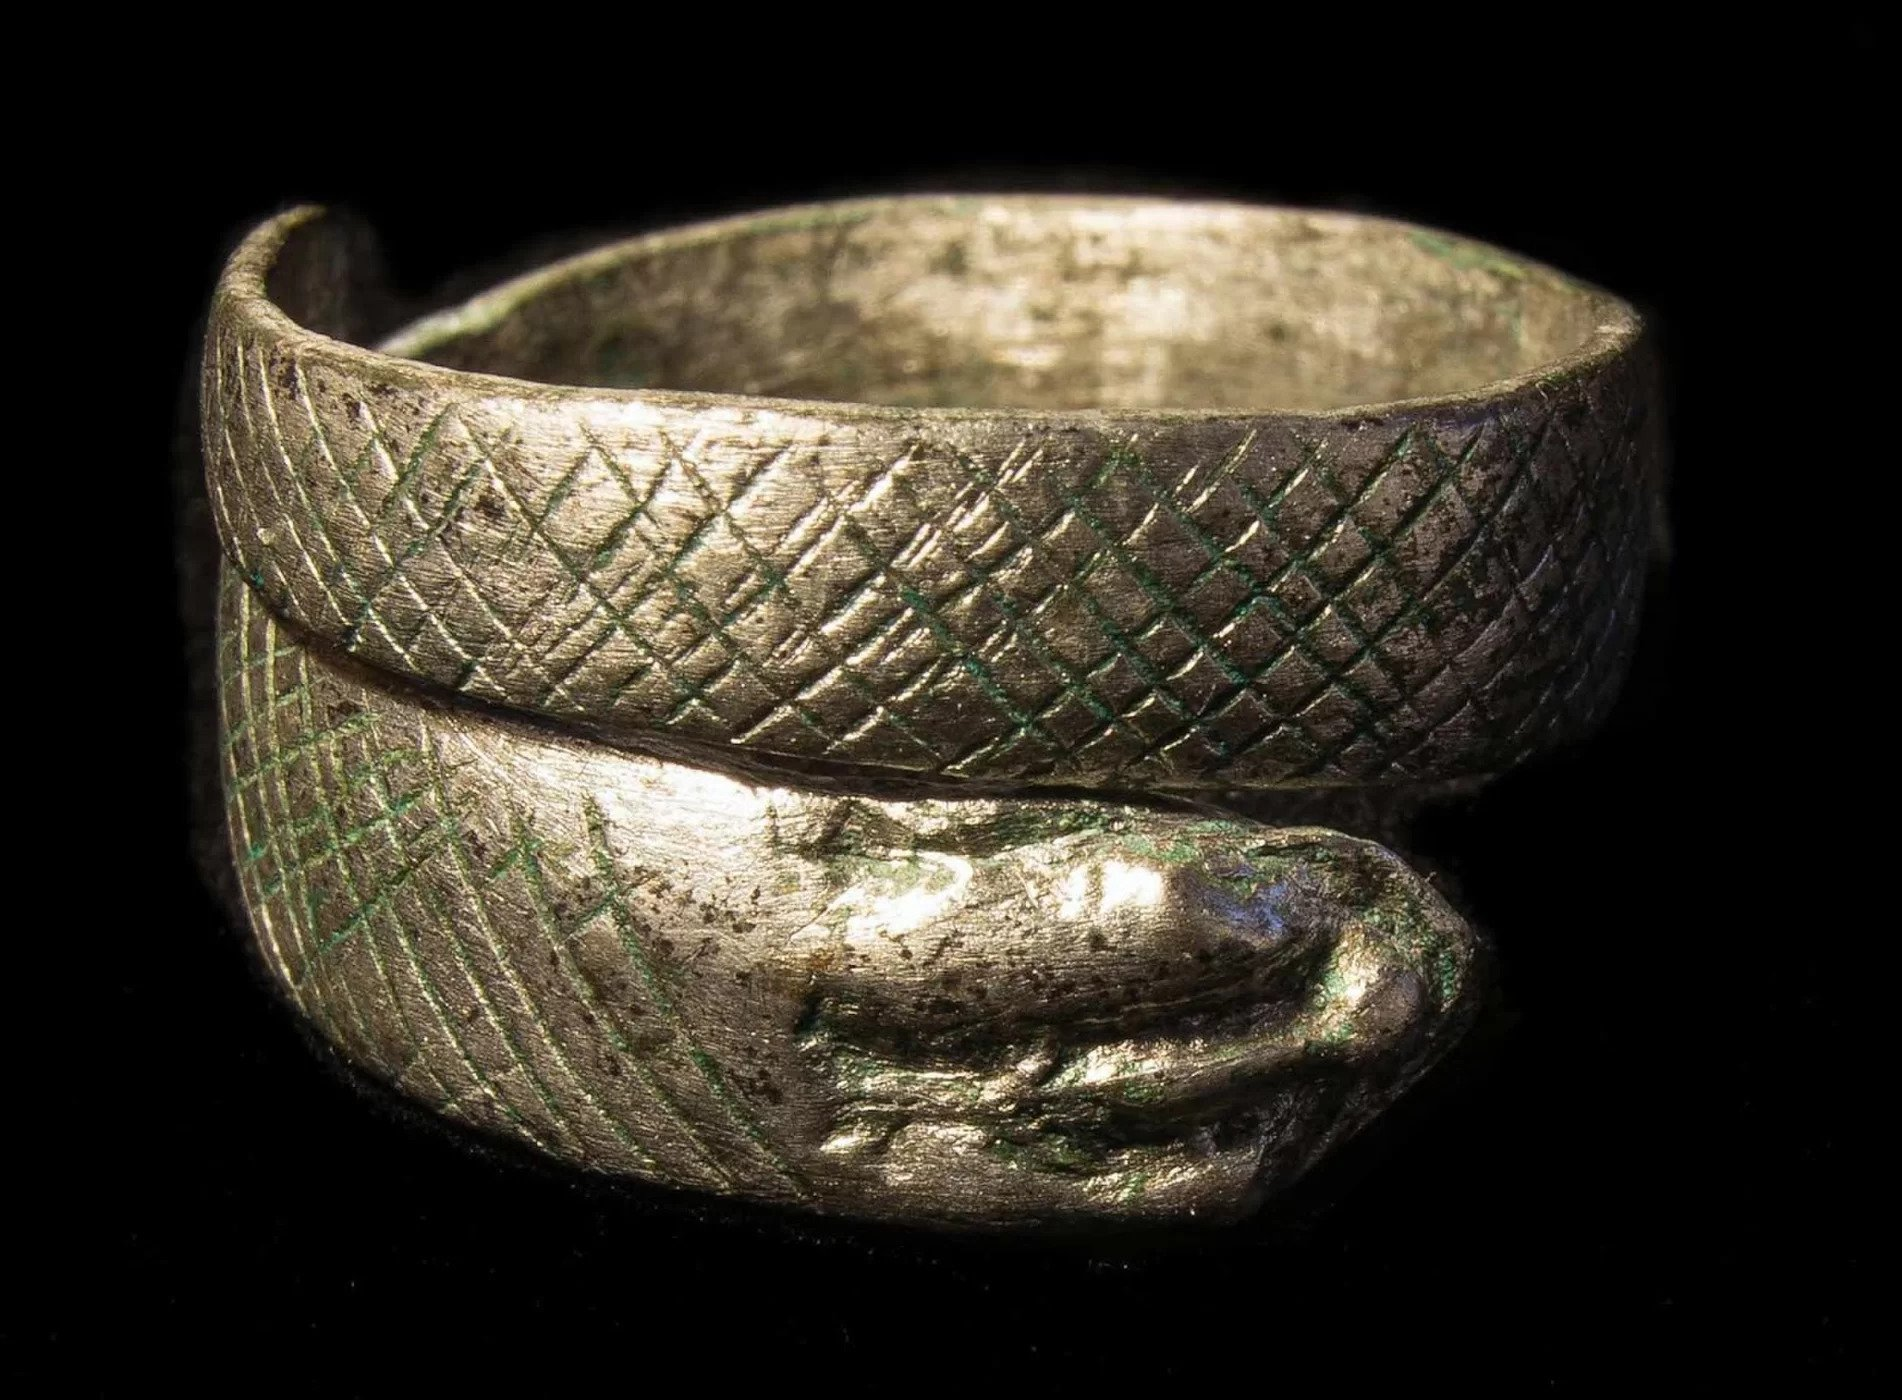 A rare silver ring shaped like a snake that wraps around the finger hints at the great wealth of the people who lived at Cataractonium.